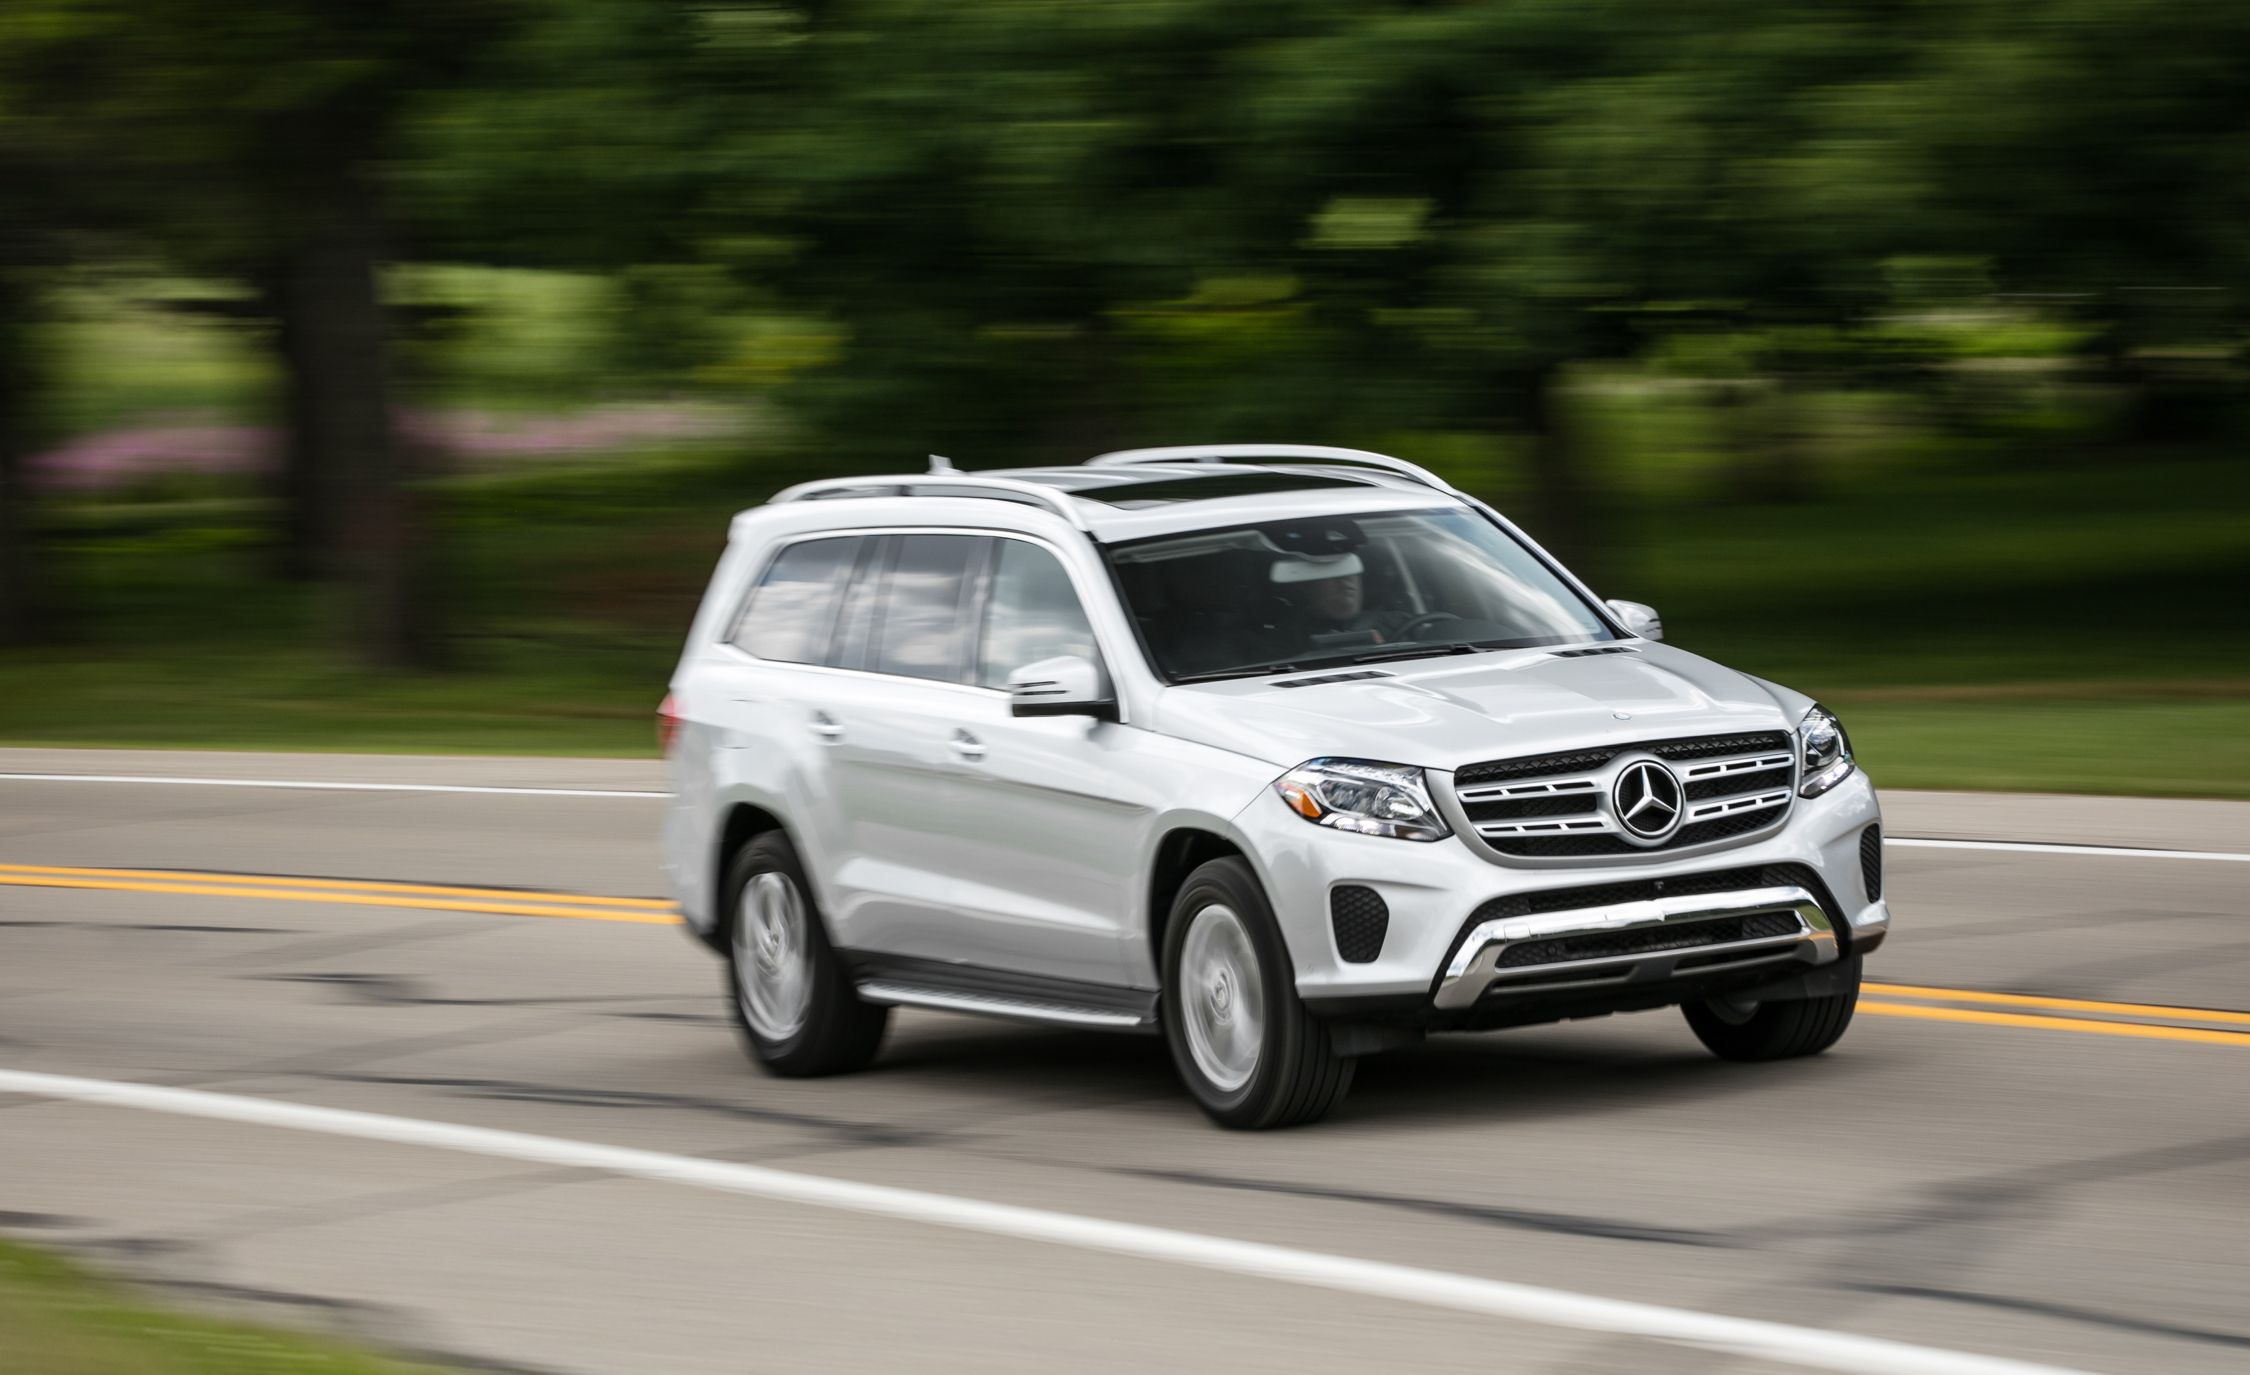 2017 mercedes benz gls class pictures photo gallery for Used mercedes benz gls450